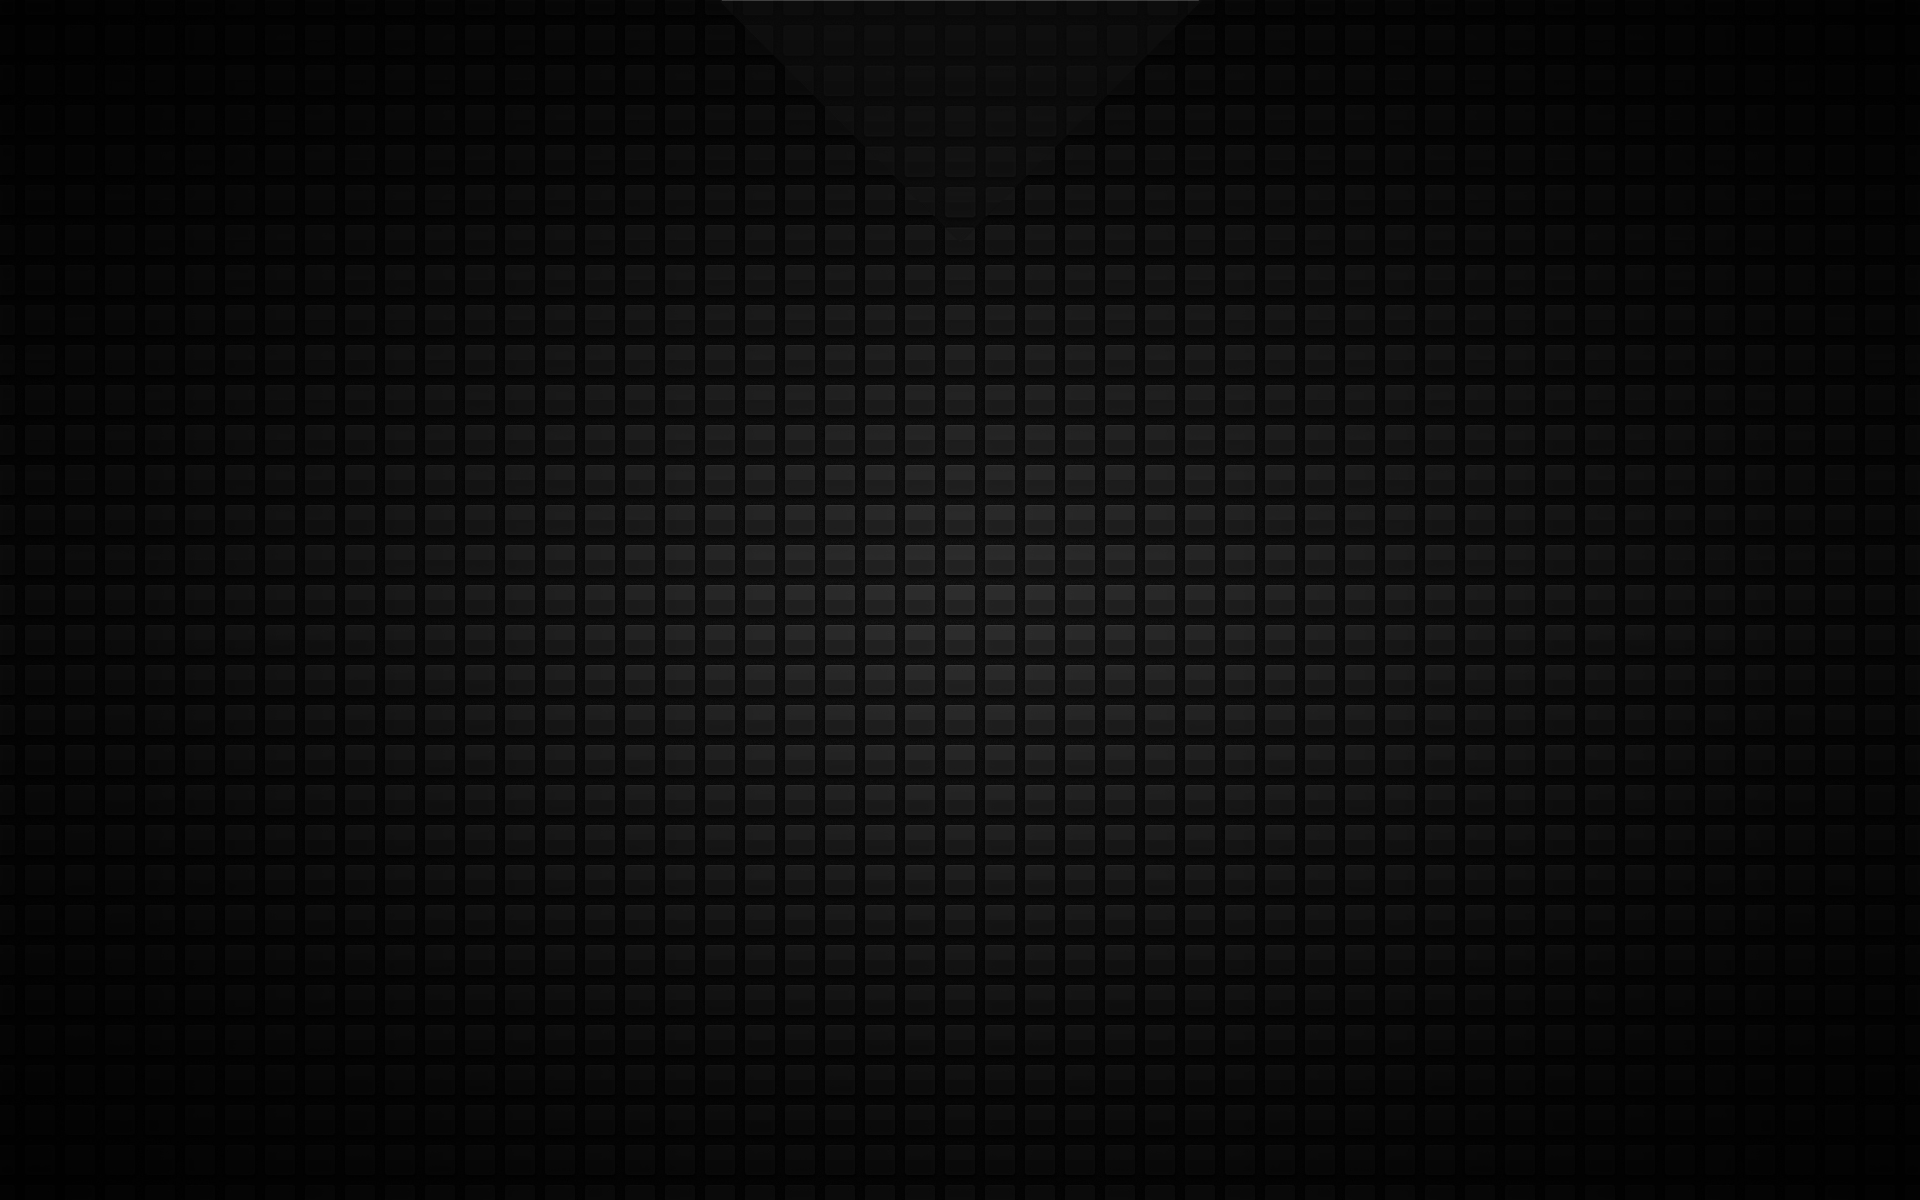 black wallpaper background free download 6311 wallpaper